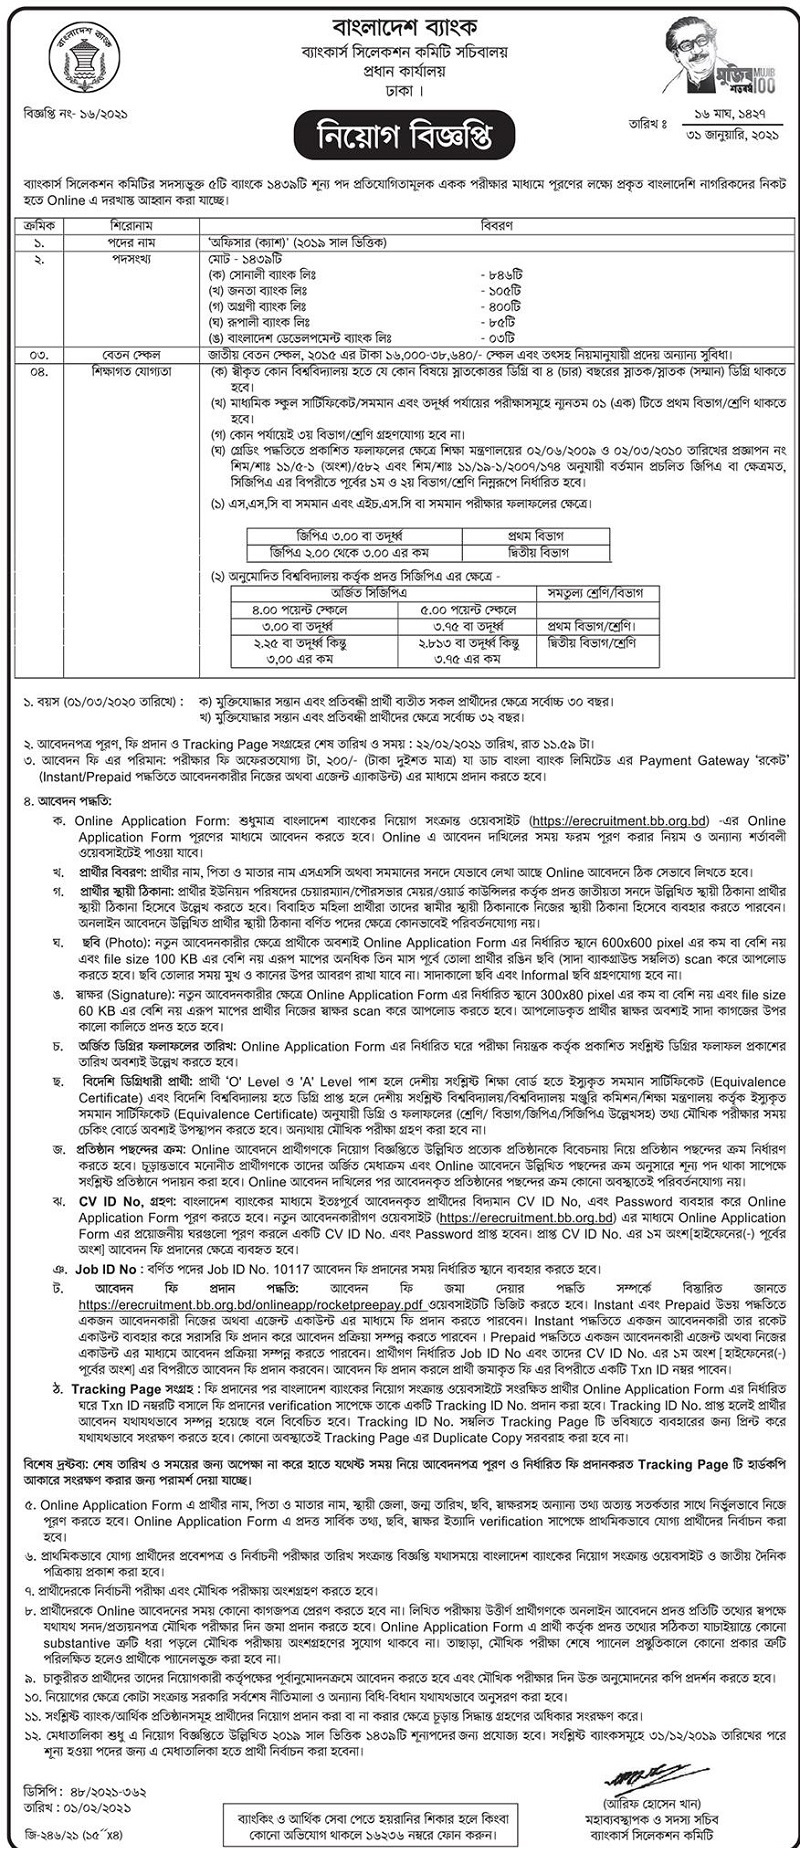 Sonali Bank Limited Job Circular 22 February 2021